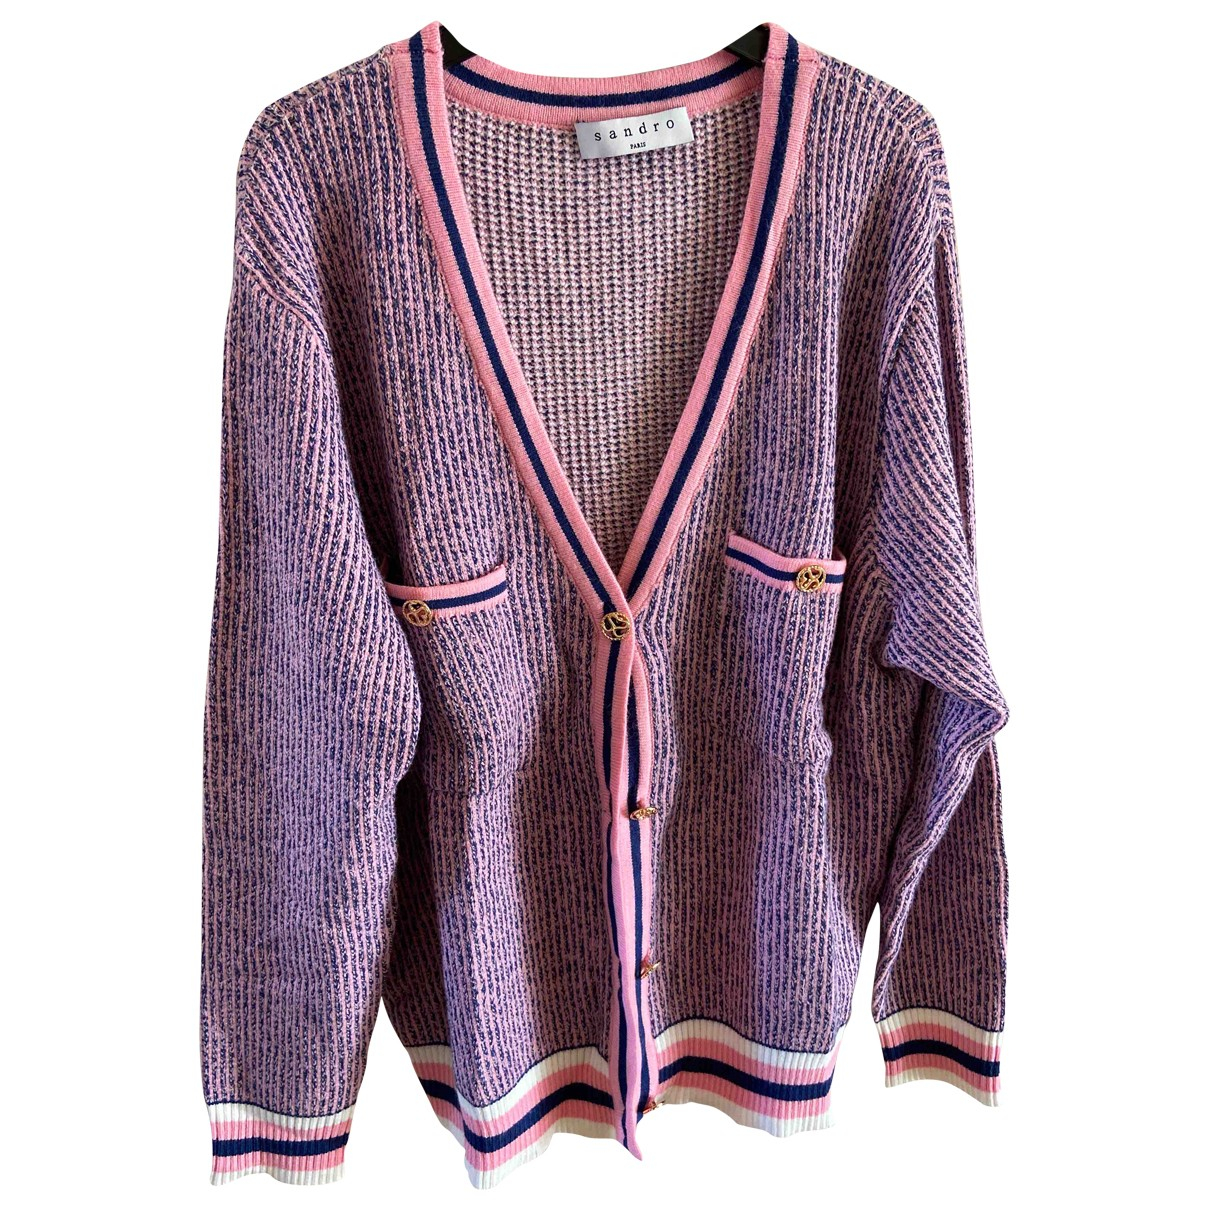 Sandro Spring Summer 2019 Pink Cotton Knitwear for Women 2 0-5